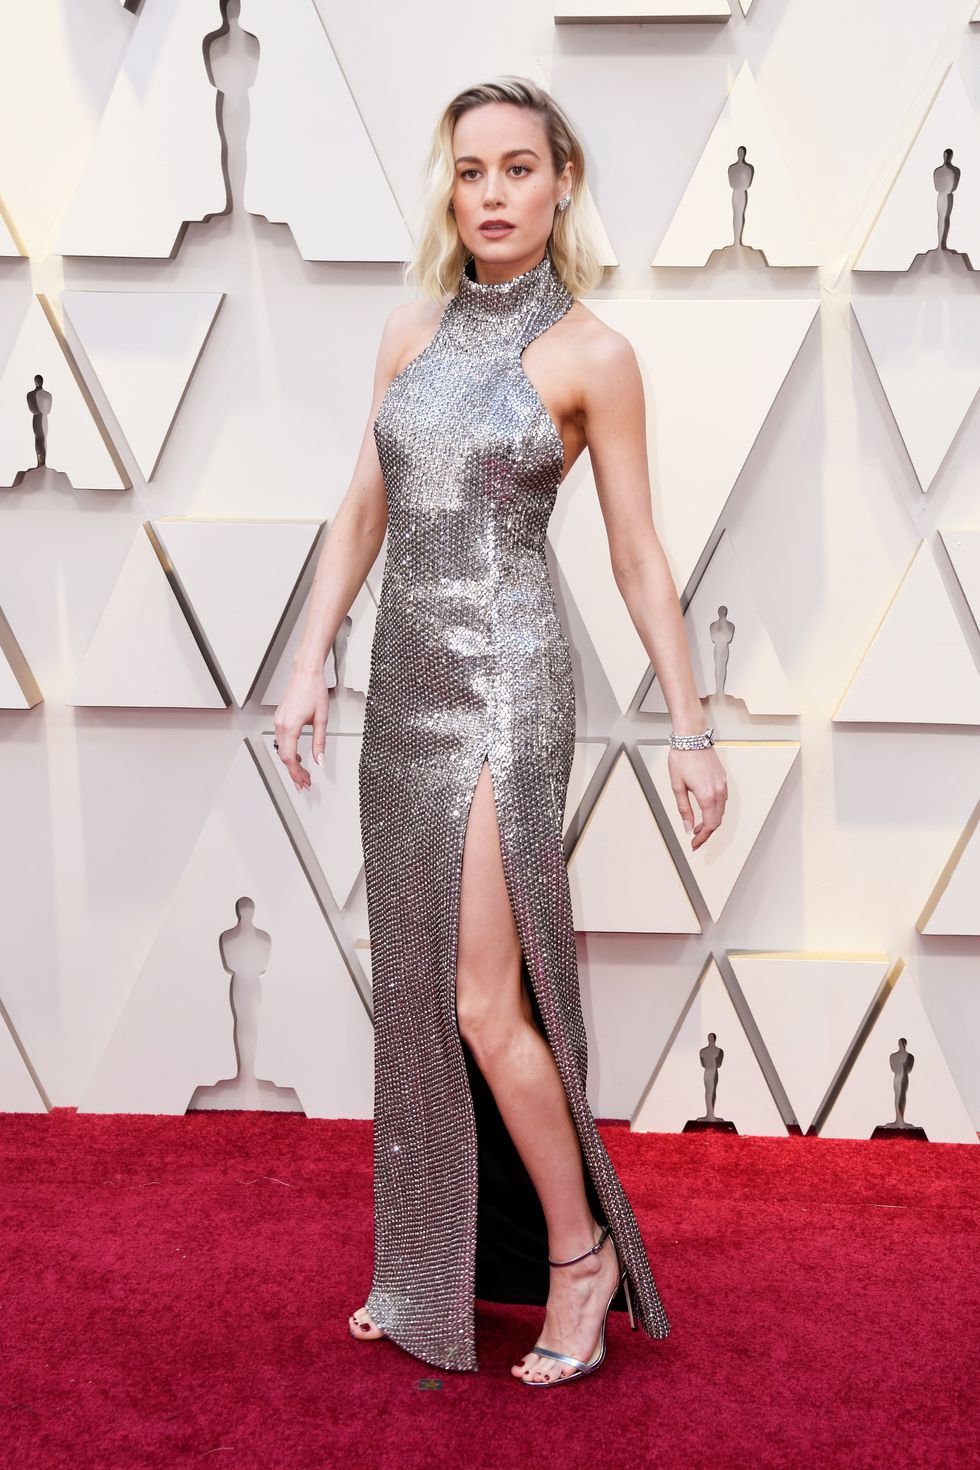 a0275ea9d6a9d The beautiful actress looked stunning in the pretty one leg out shiny  silver gown from head to toe